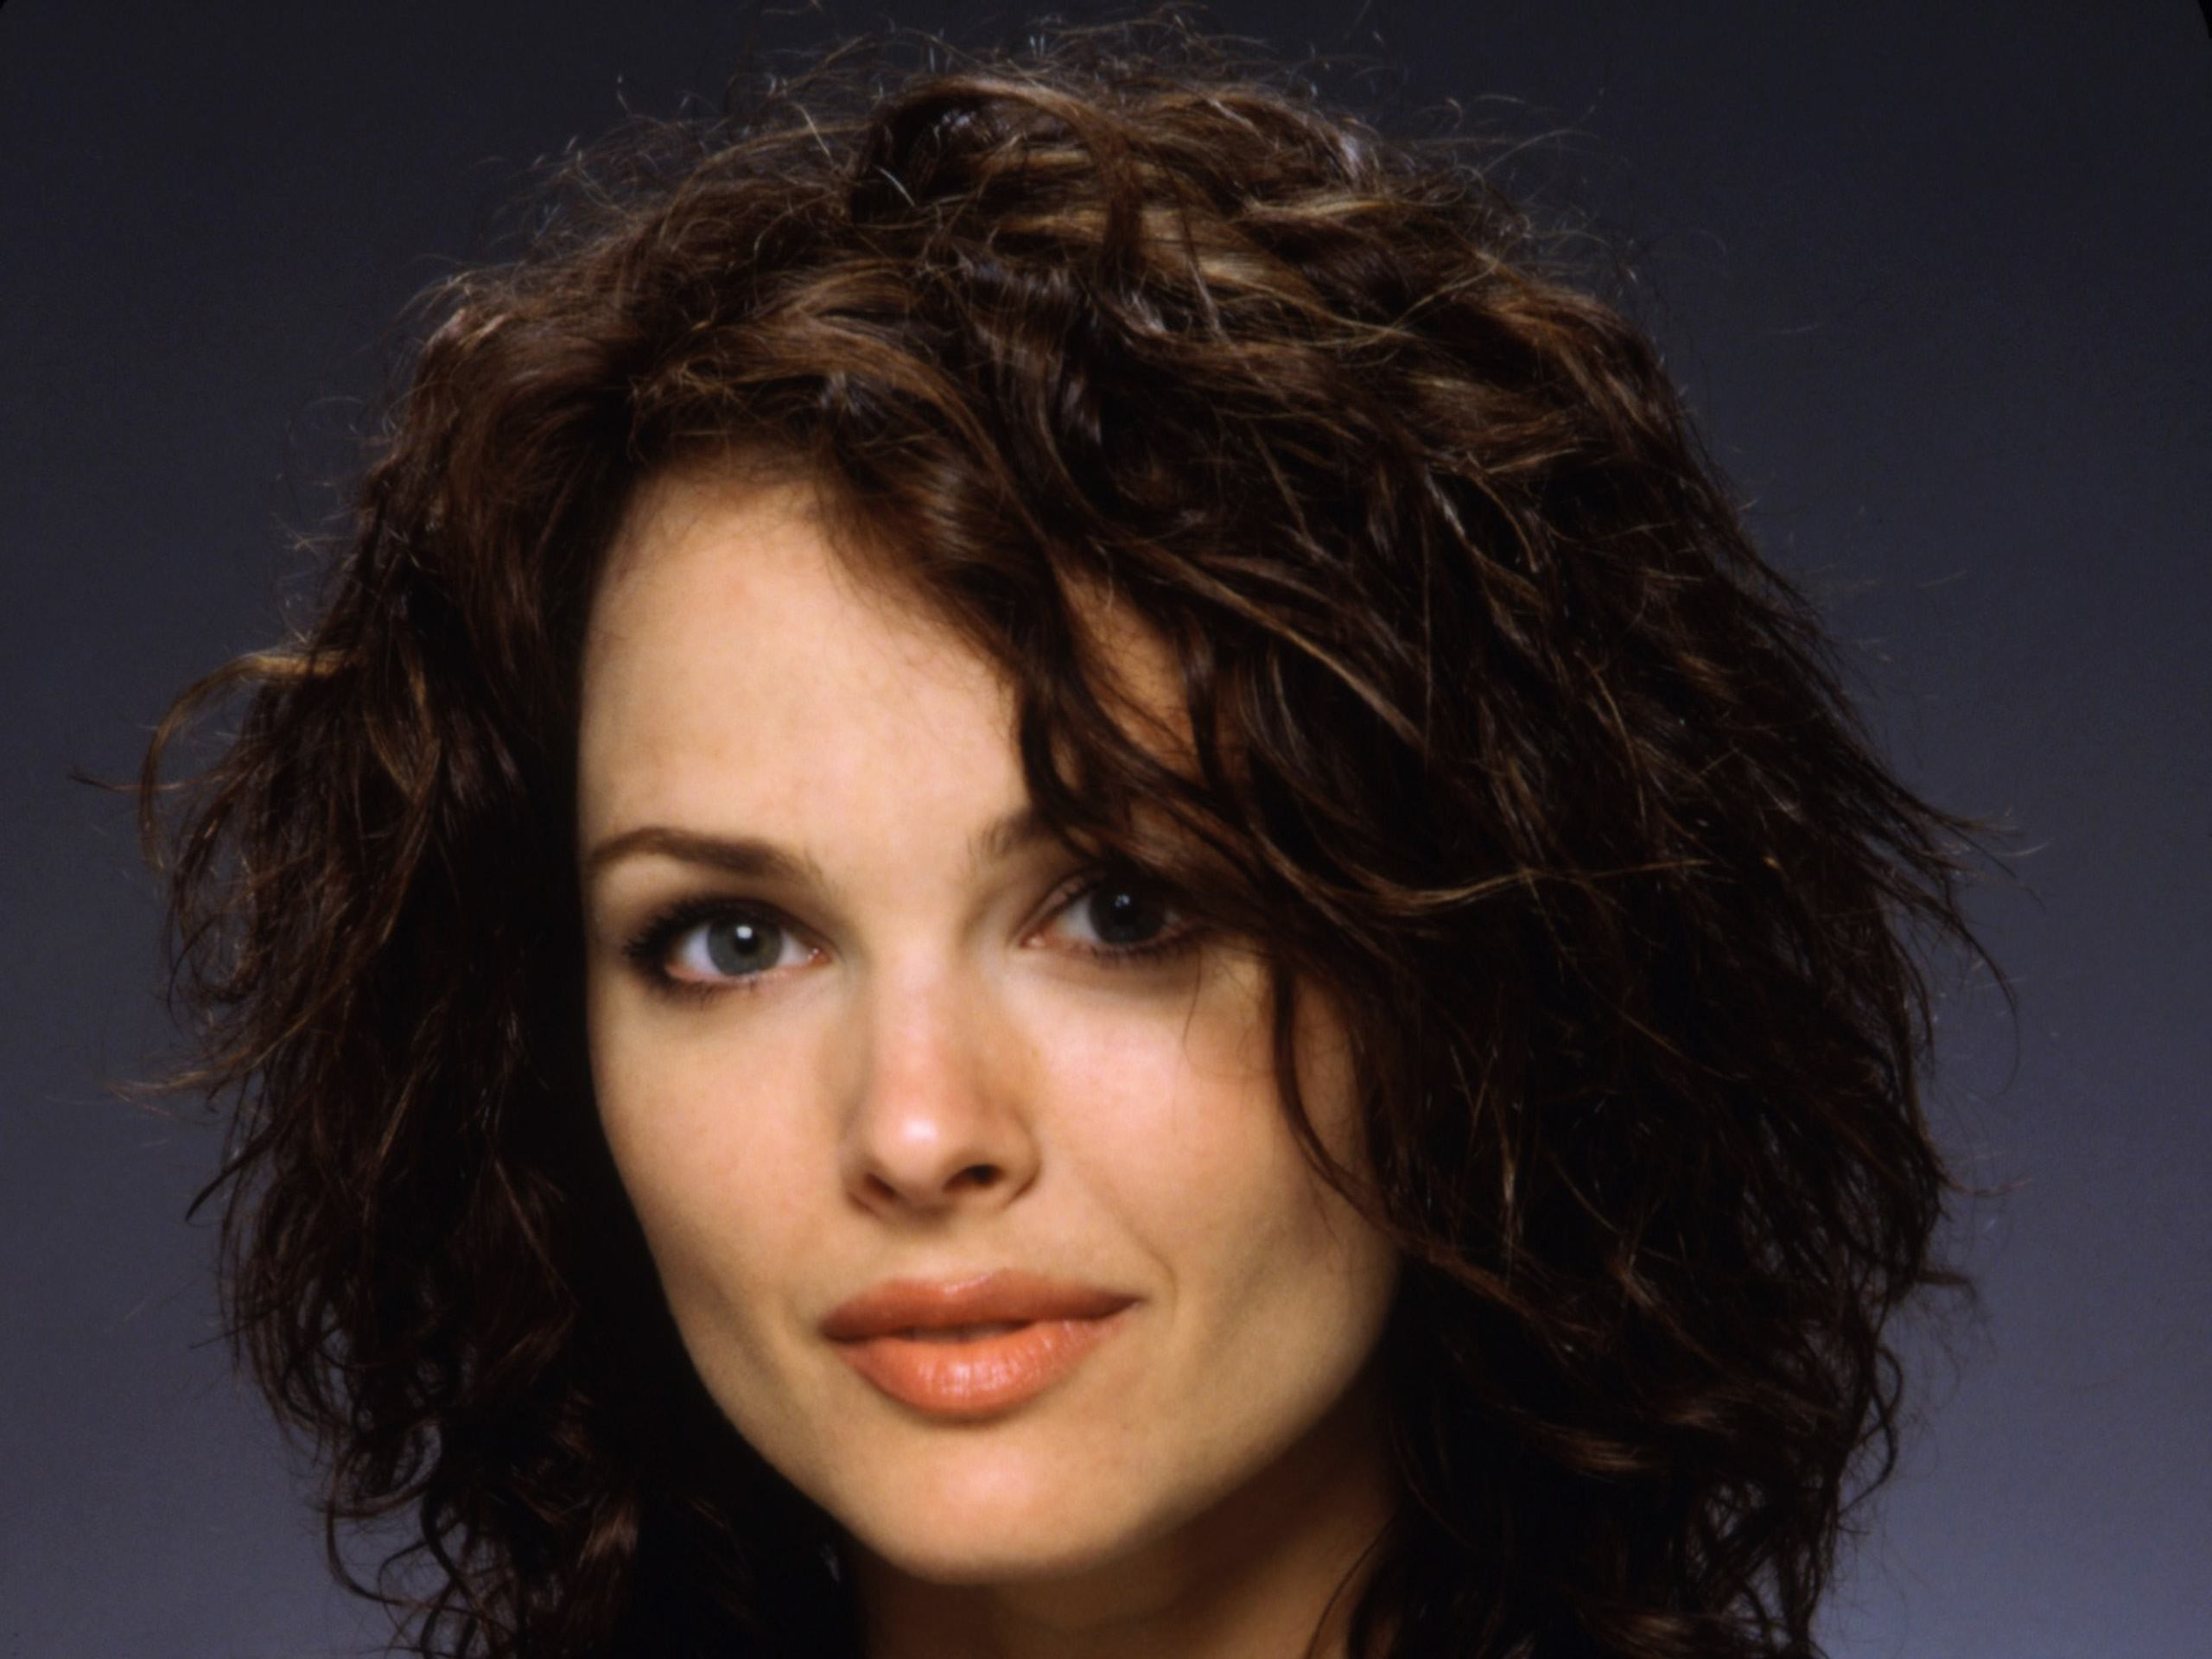 dina meyerdina meyer 2017, dina meyer nationality, dina meyer barbara gordon, dina meyer who dated who, dina meyer, dina meyer married, dina meyer imdb, dina meyer husband, dina meyer wiki, dina meyer instagram, dina meyer 2015, dina meyer boyfriend, dina meyer twitter, dina meyer saw, dina meyer facebook, dina meyer photos